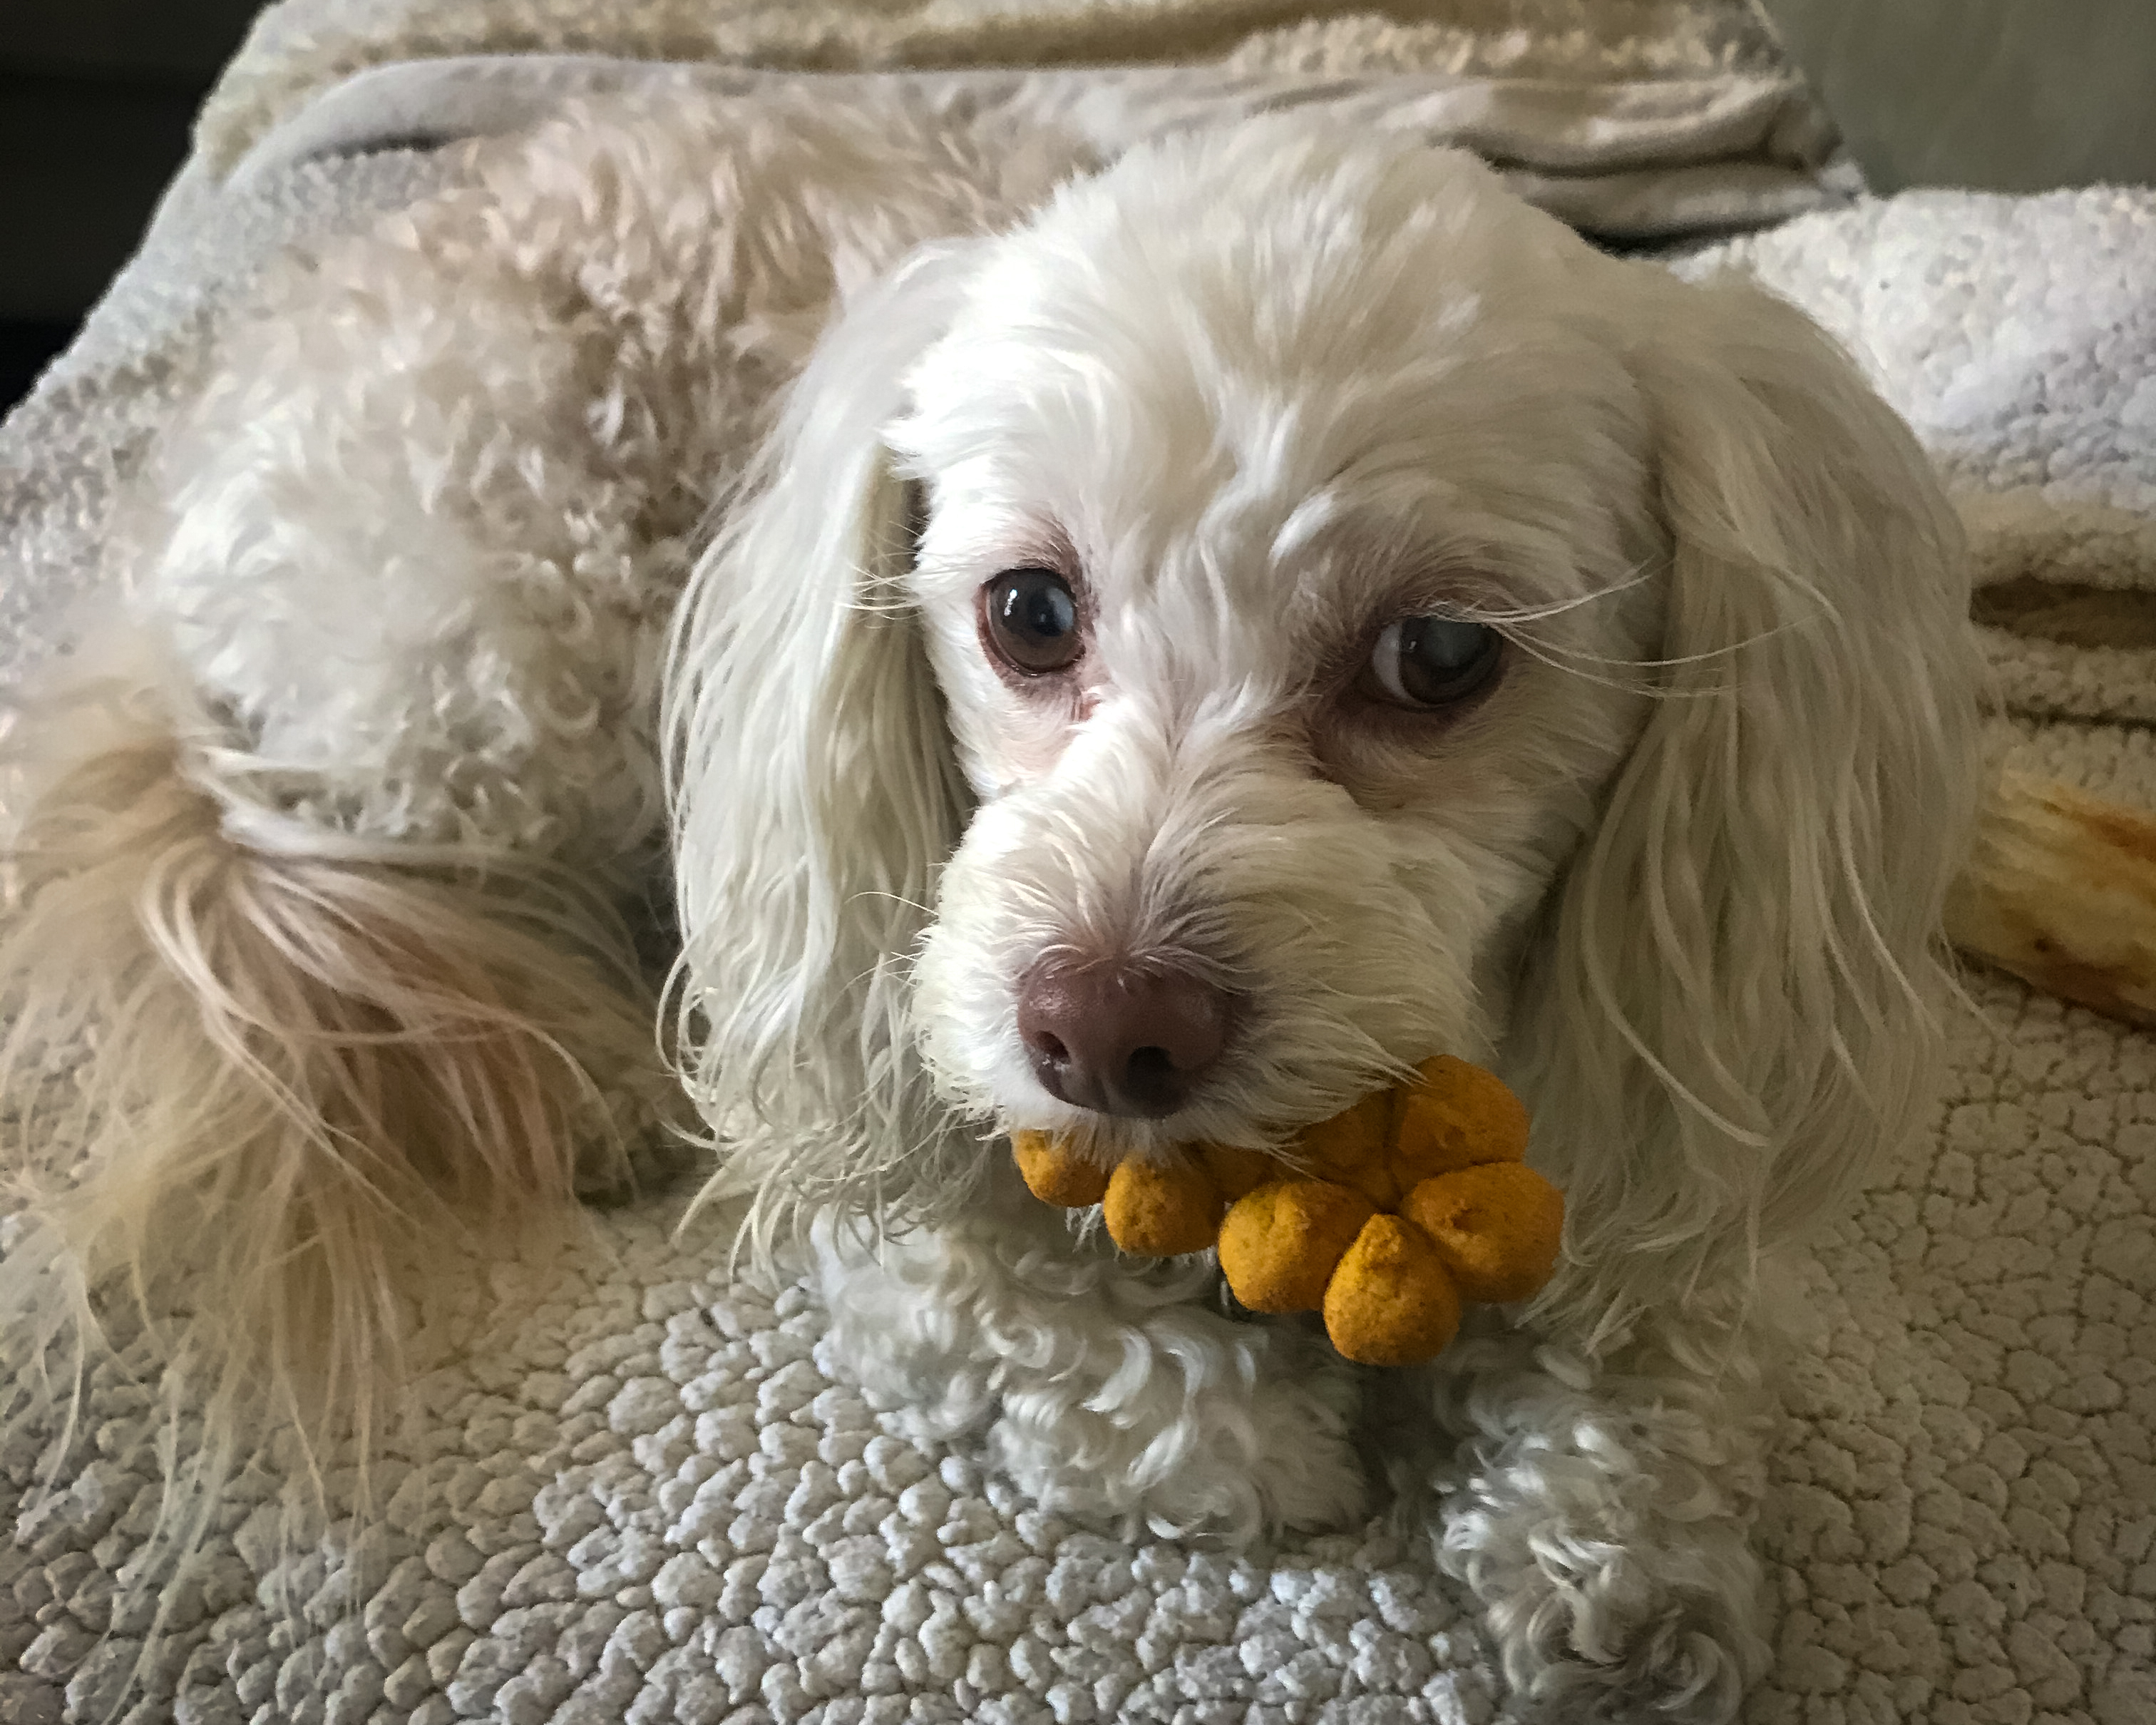 Dog with treat in mouth